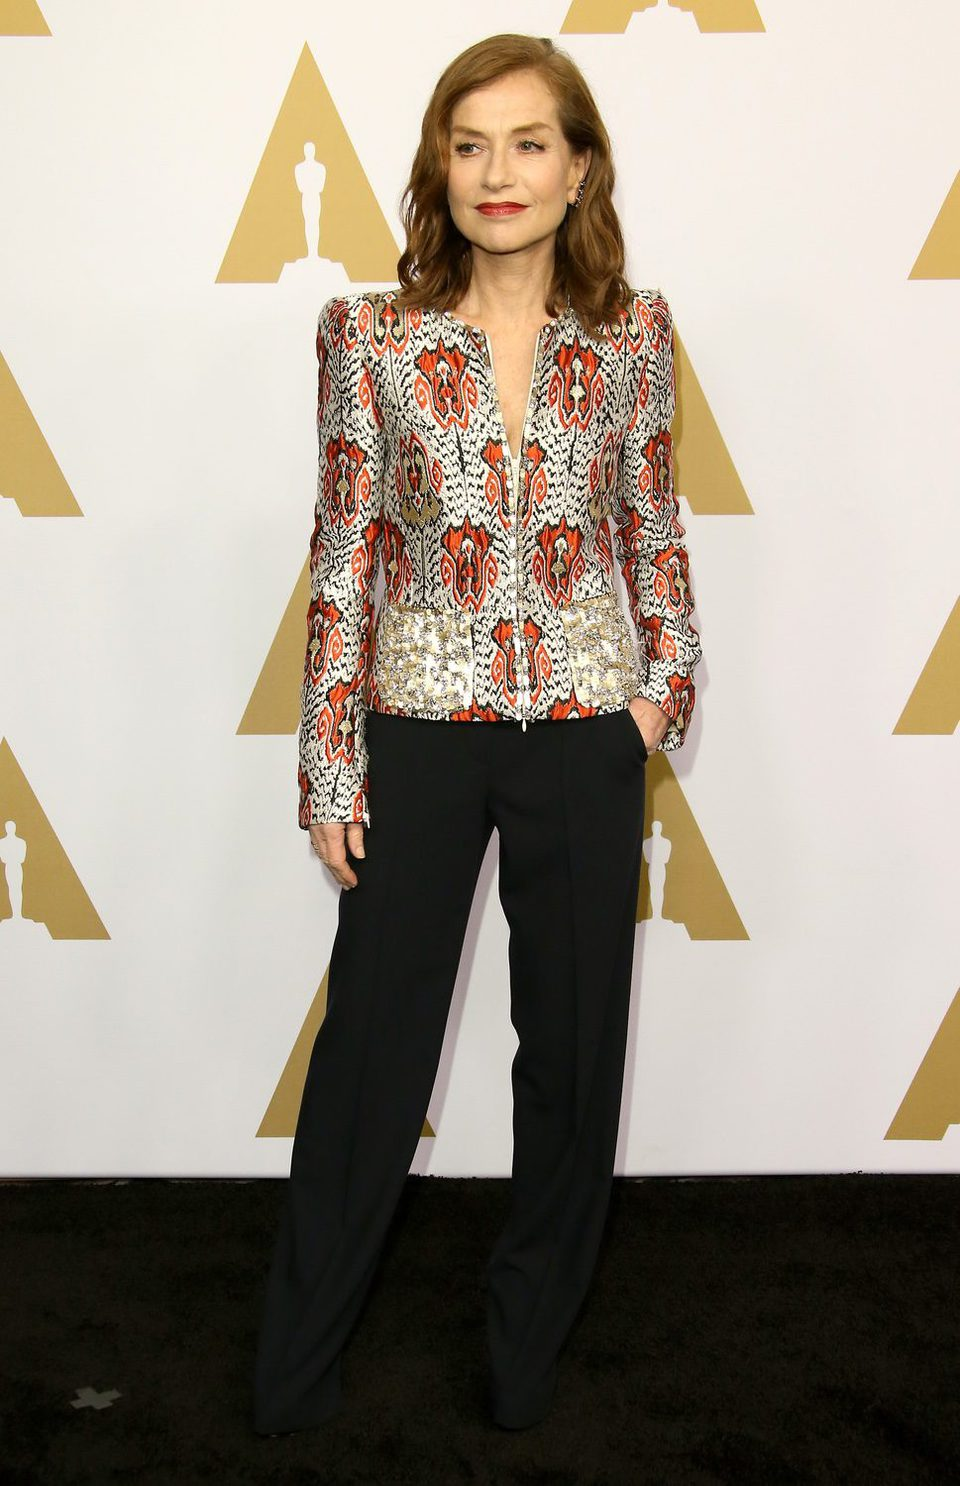 Isabelle Huppert at the 2017 Annual Academy Awards Nominee Luncheon